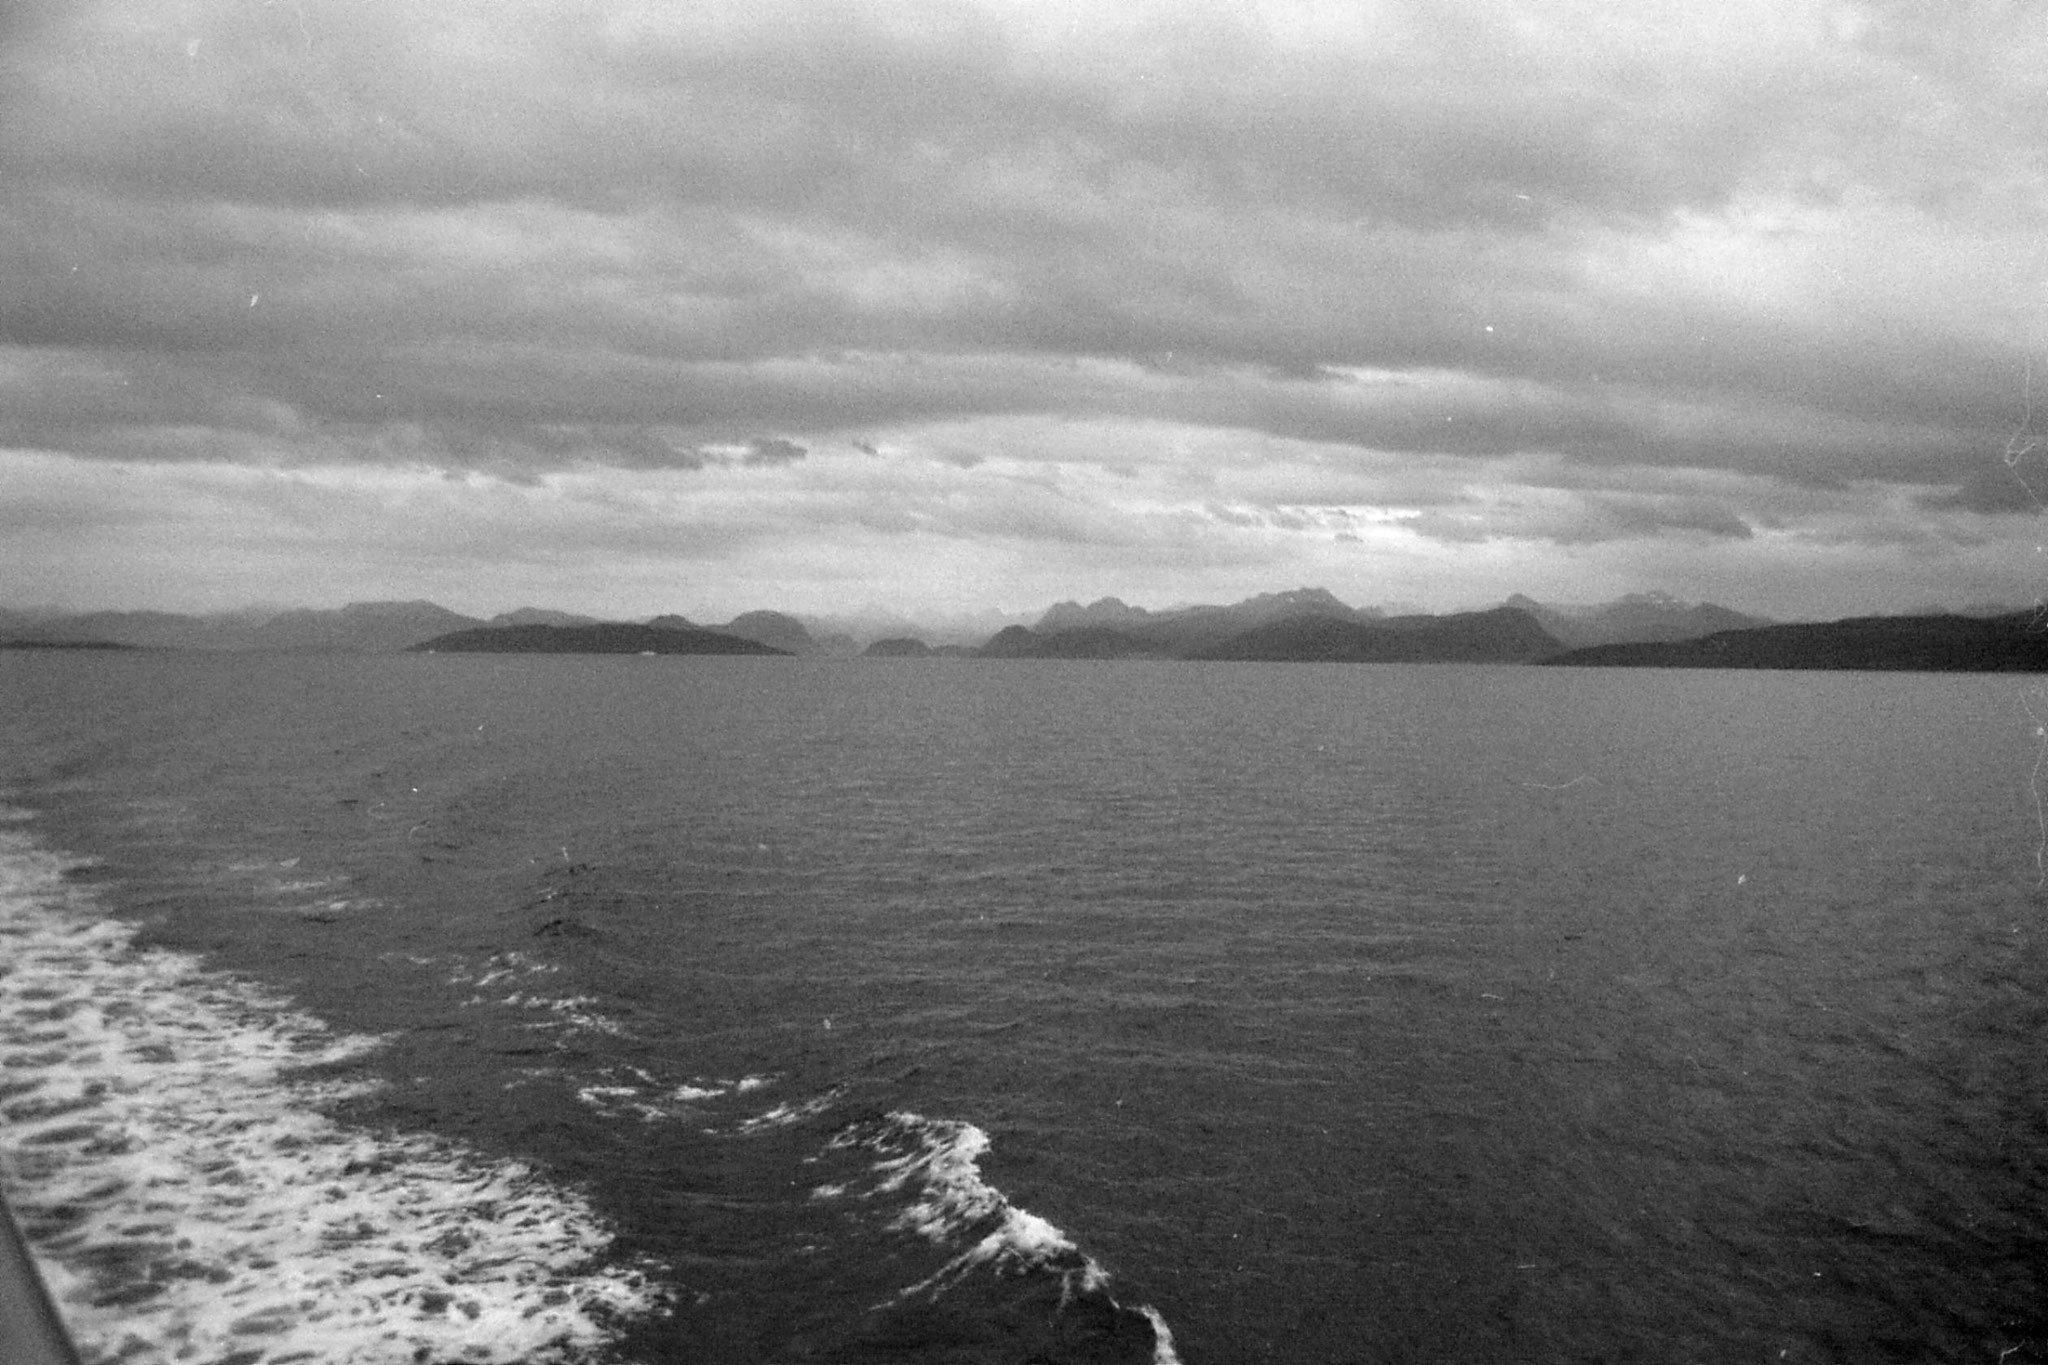 22/9/1988: 3: leaving Molde, Romsdal mountains